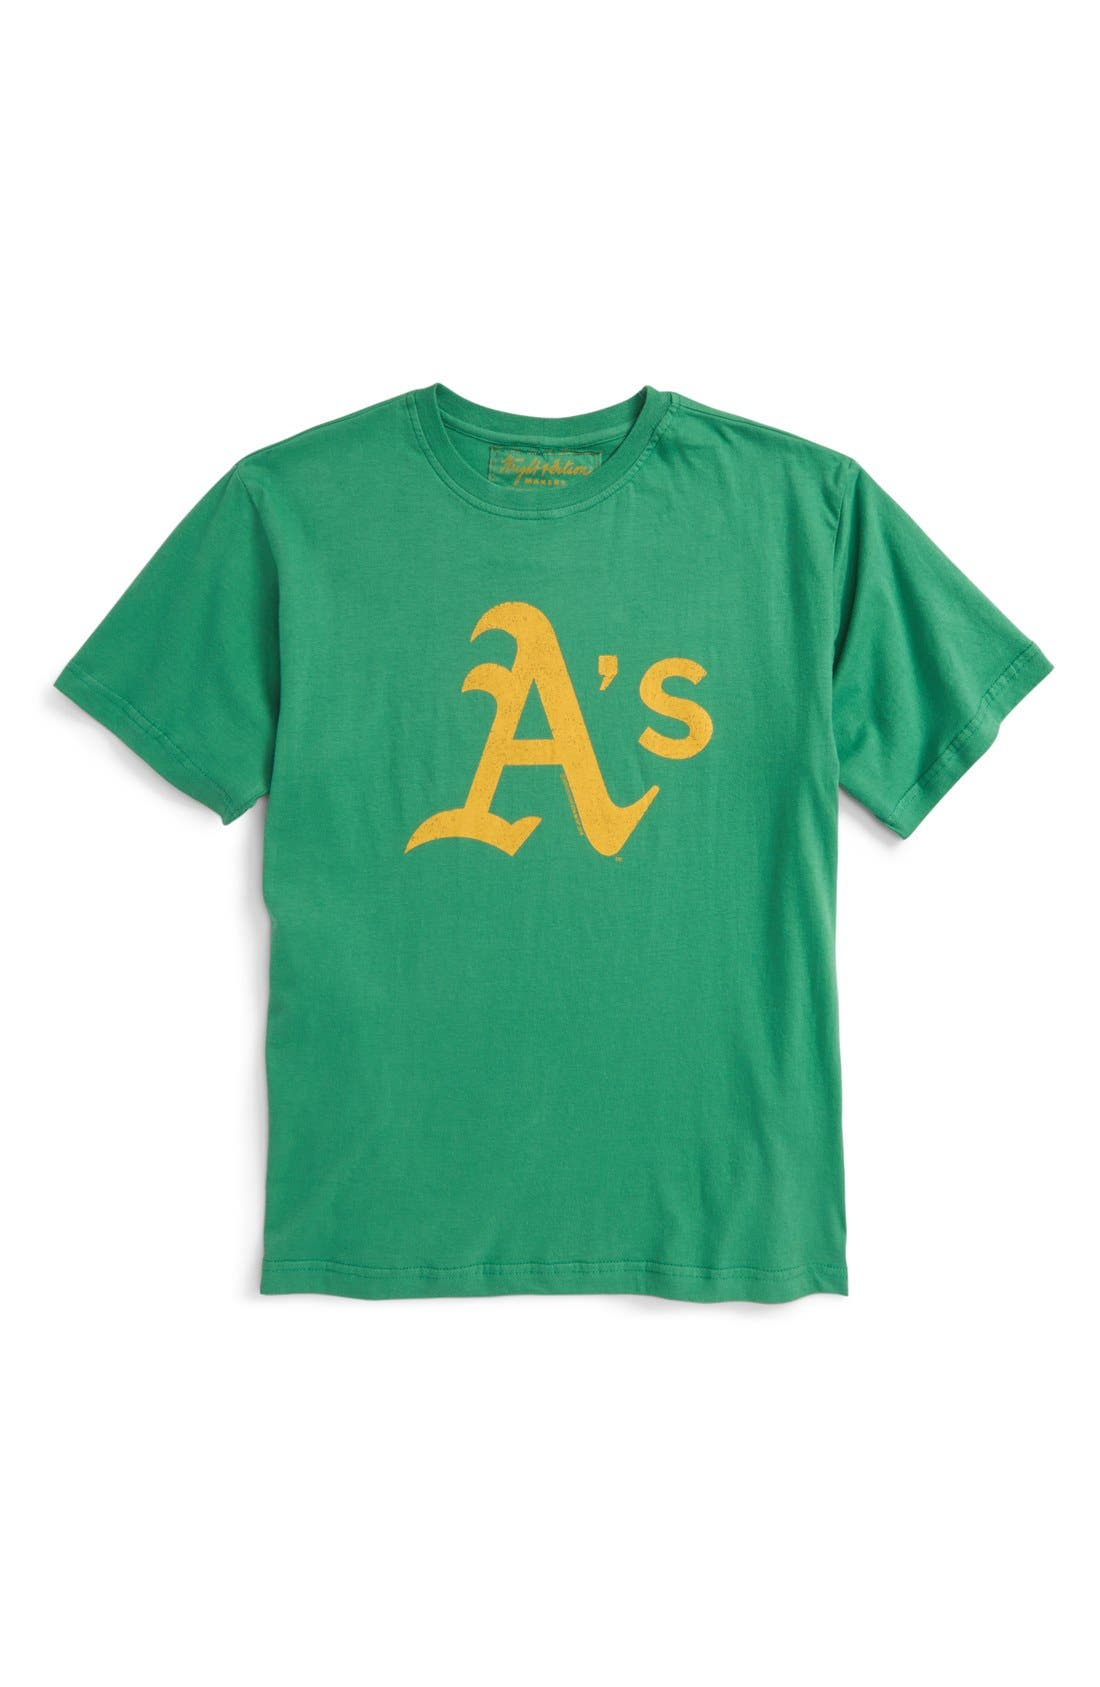 'Oakland Athletics' T-Shirt,                             Main thumbnail 1, color,                             Green